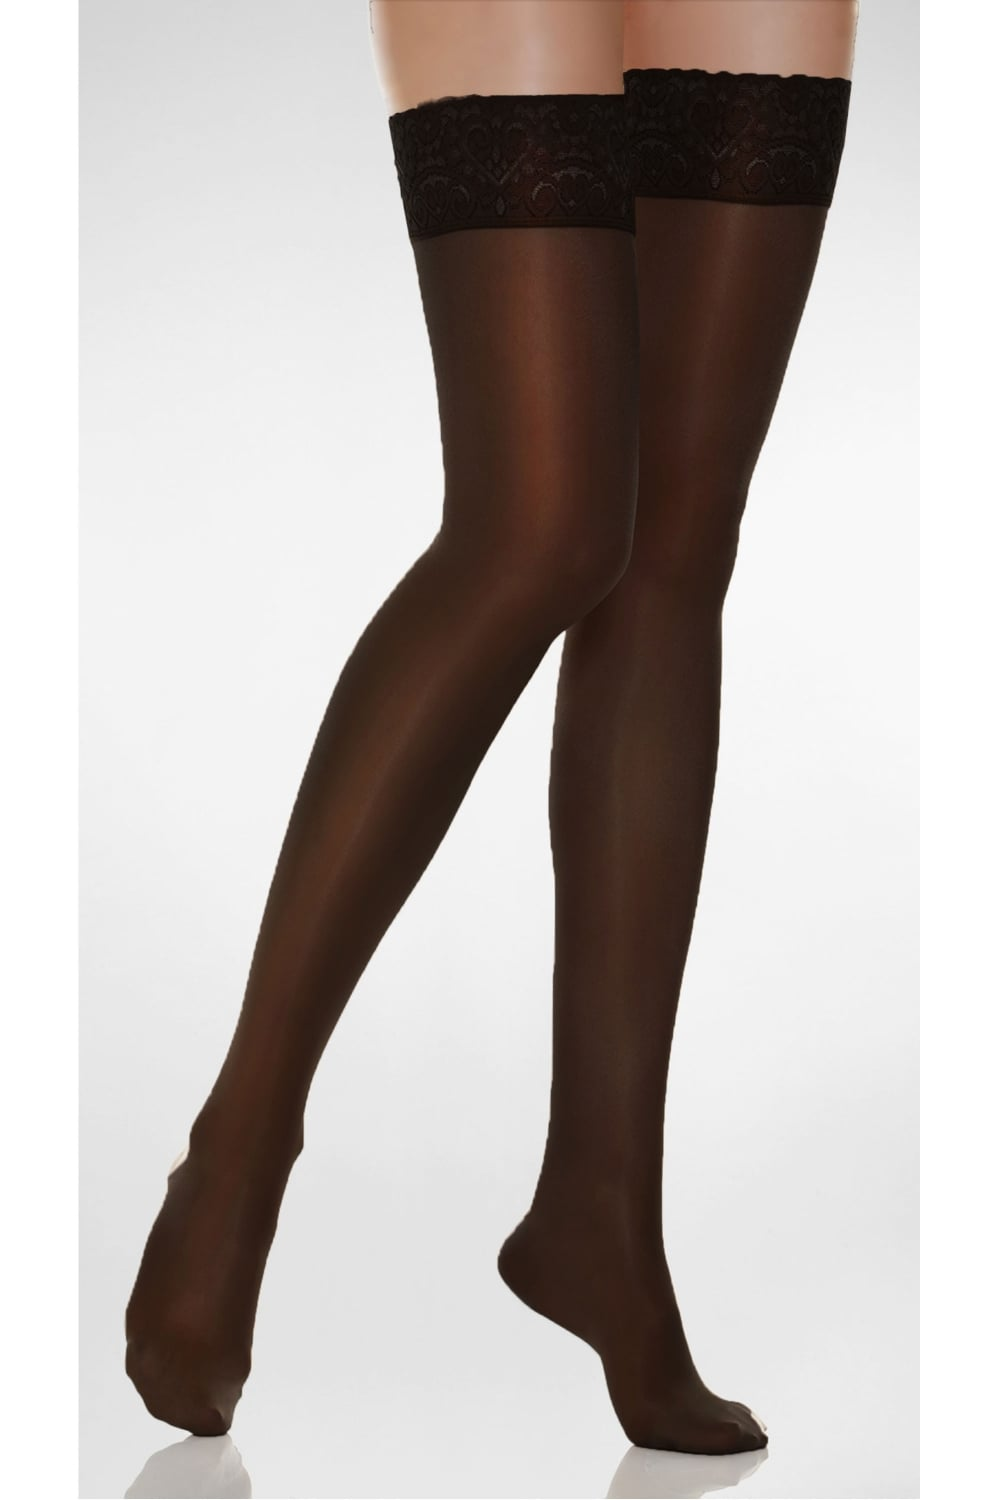 Andrea Bucci 15 Denier Gloss Sheer Luxury Lace Top Hold Ups